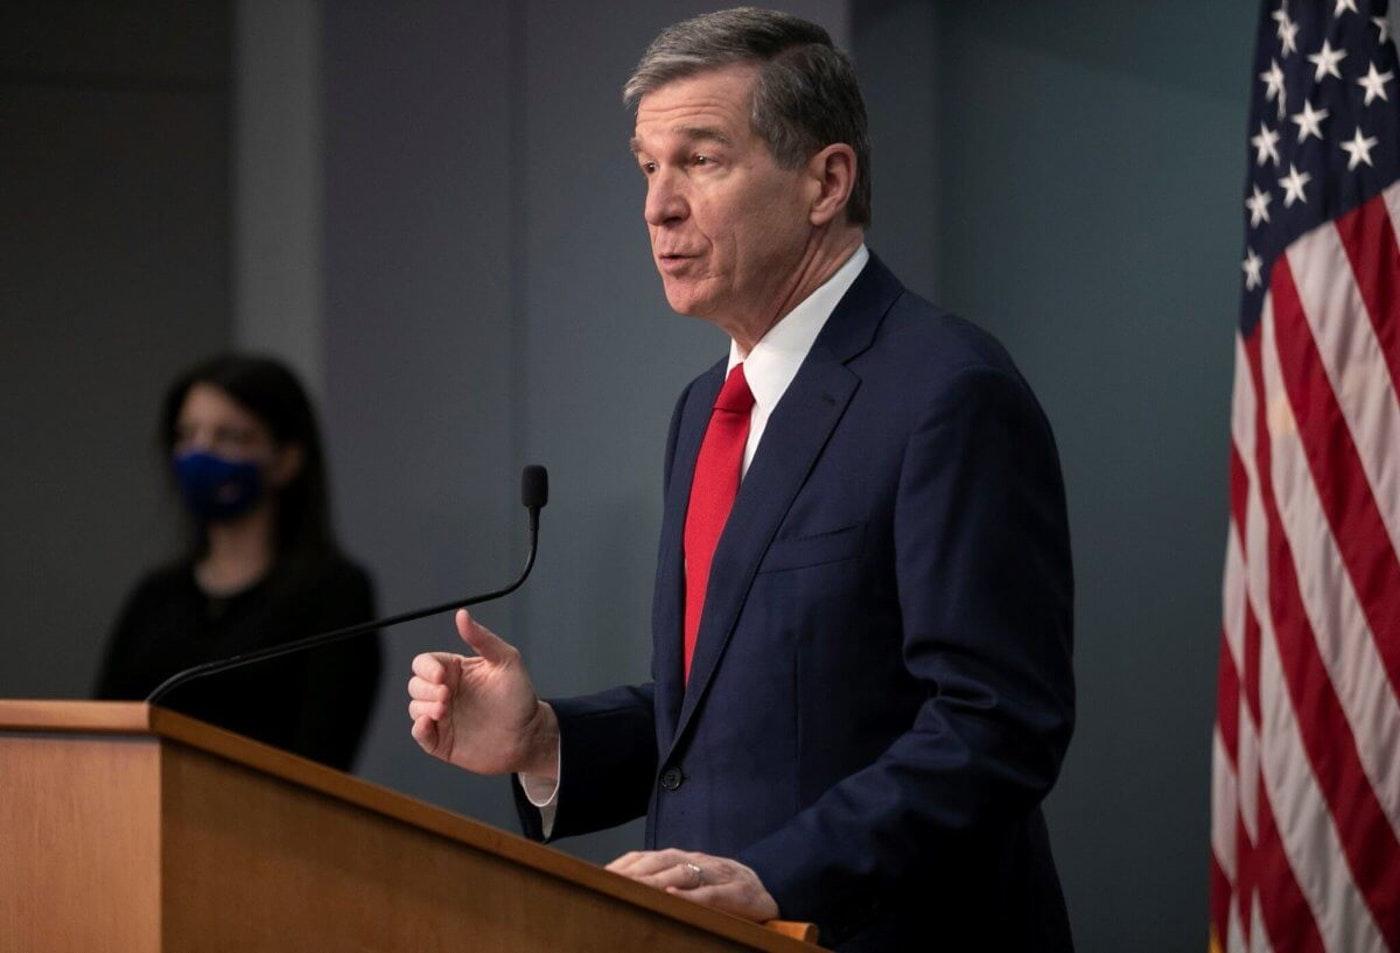 Gov. Roy Cooper speaks in March at a COVID-19 media briefing. (Image via NCDPS)